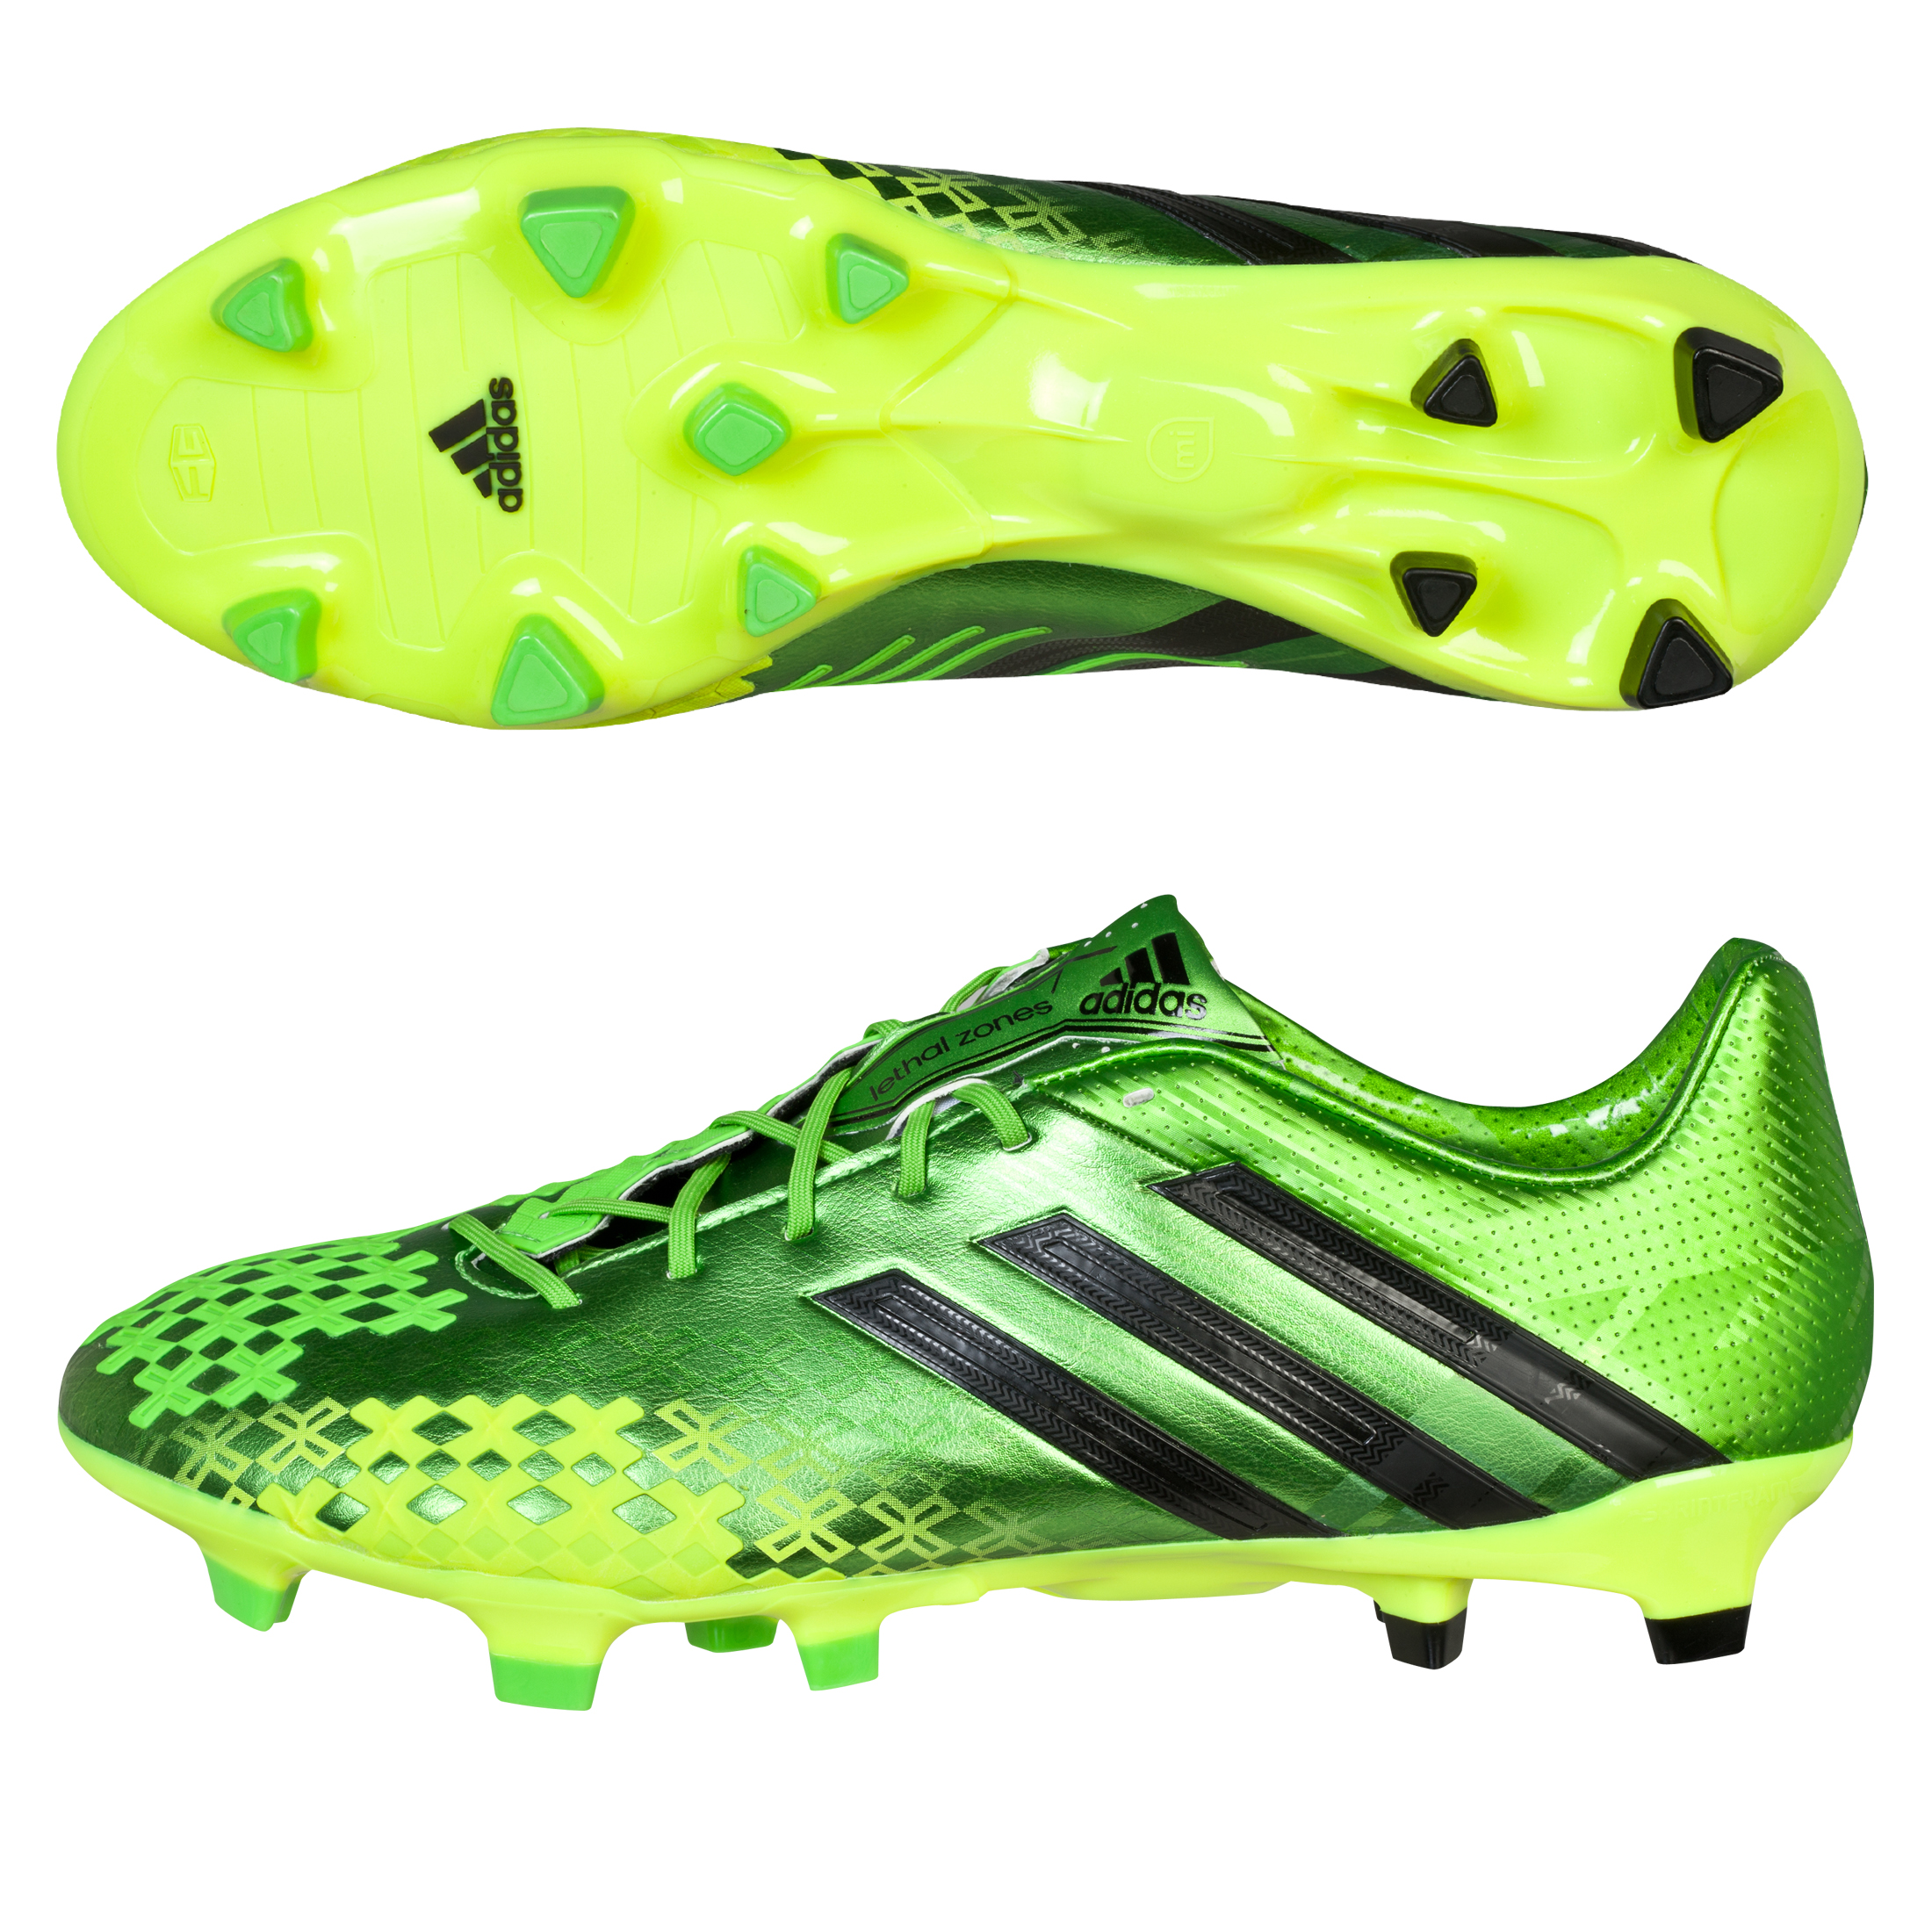 Adidas Predator LZ TRX Firm Ground Football Boots Green